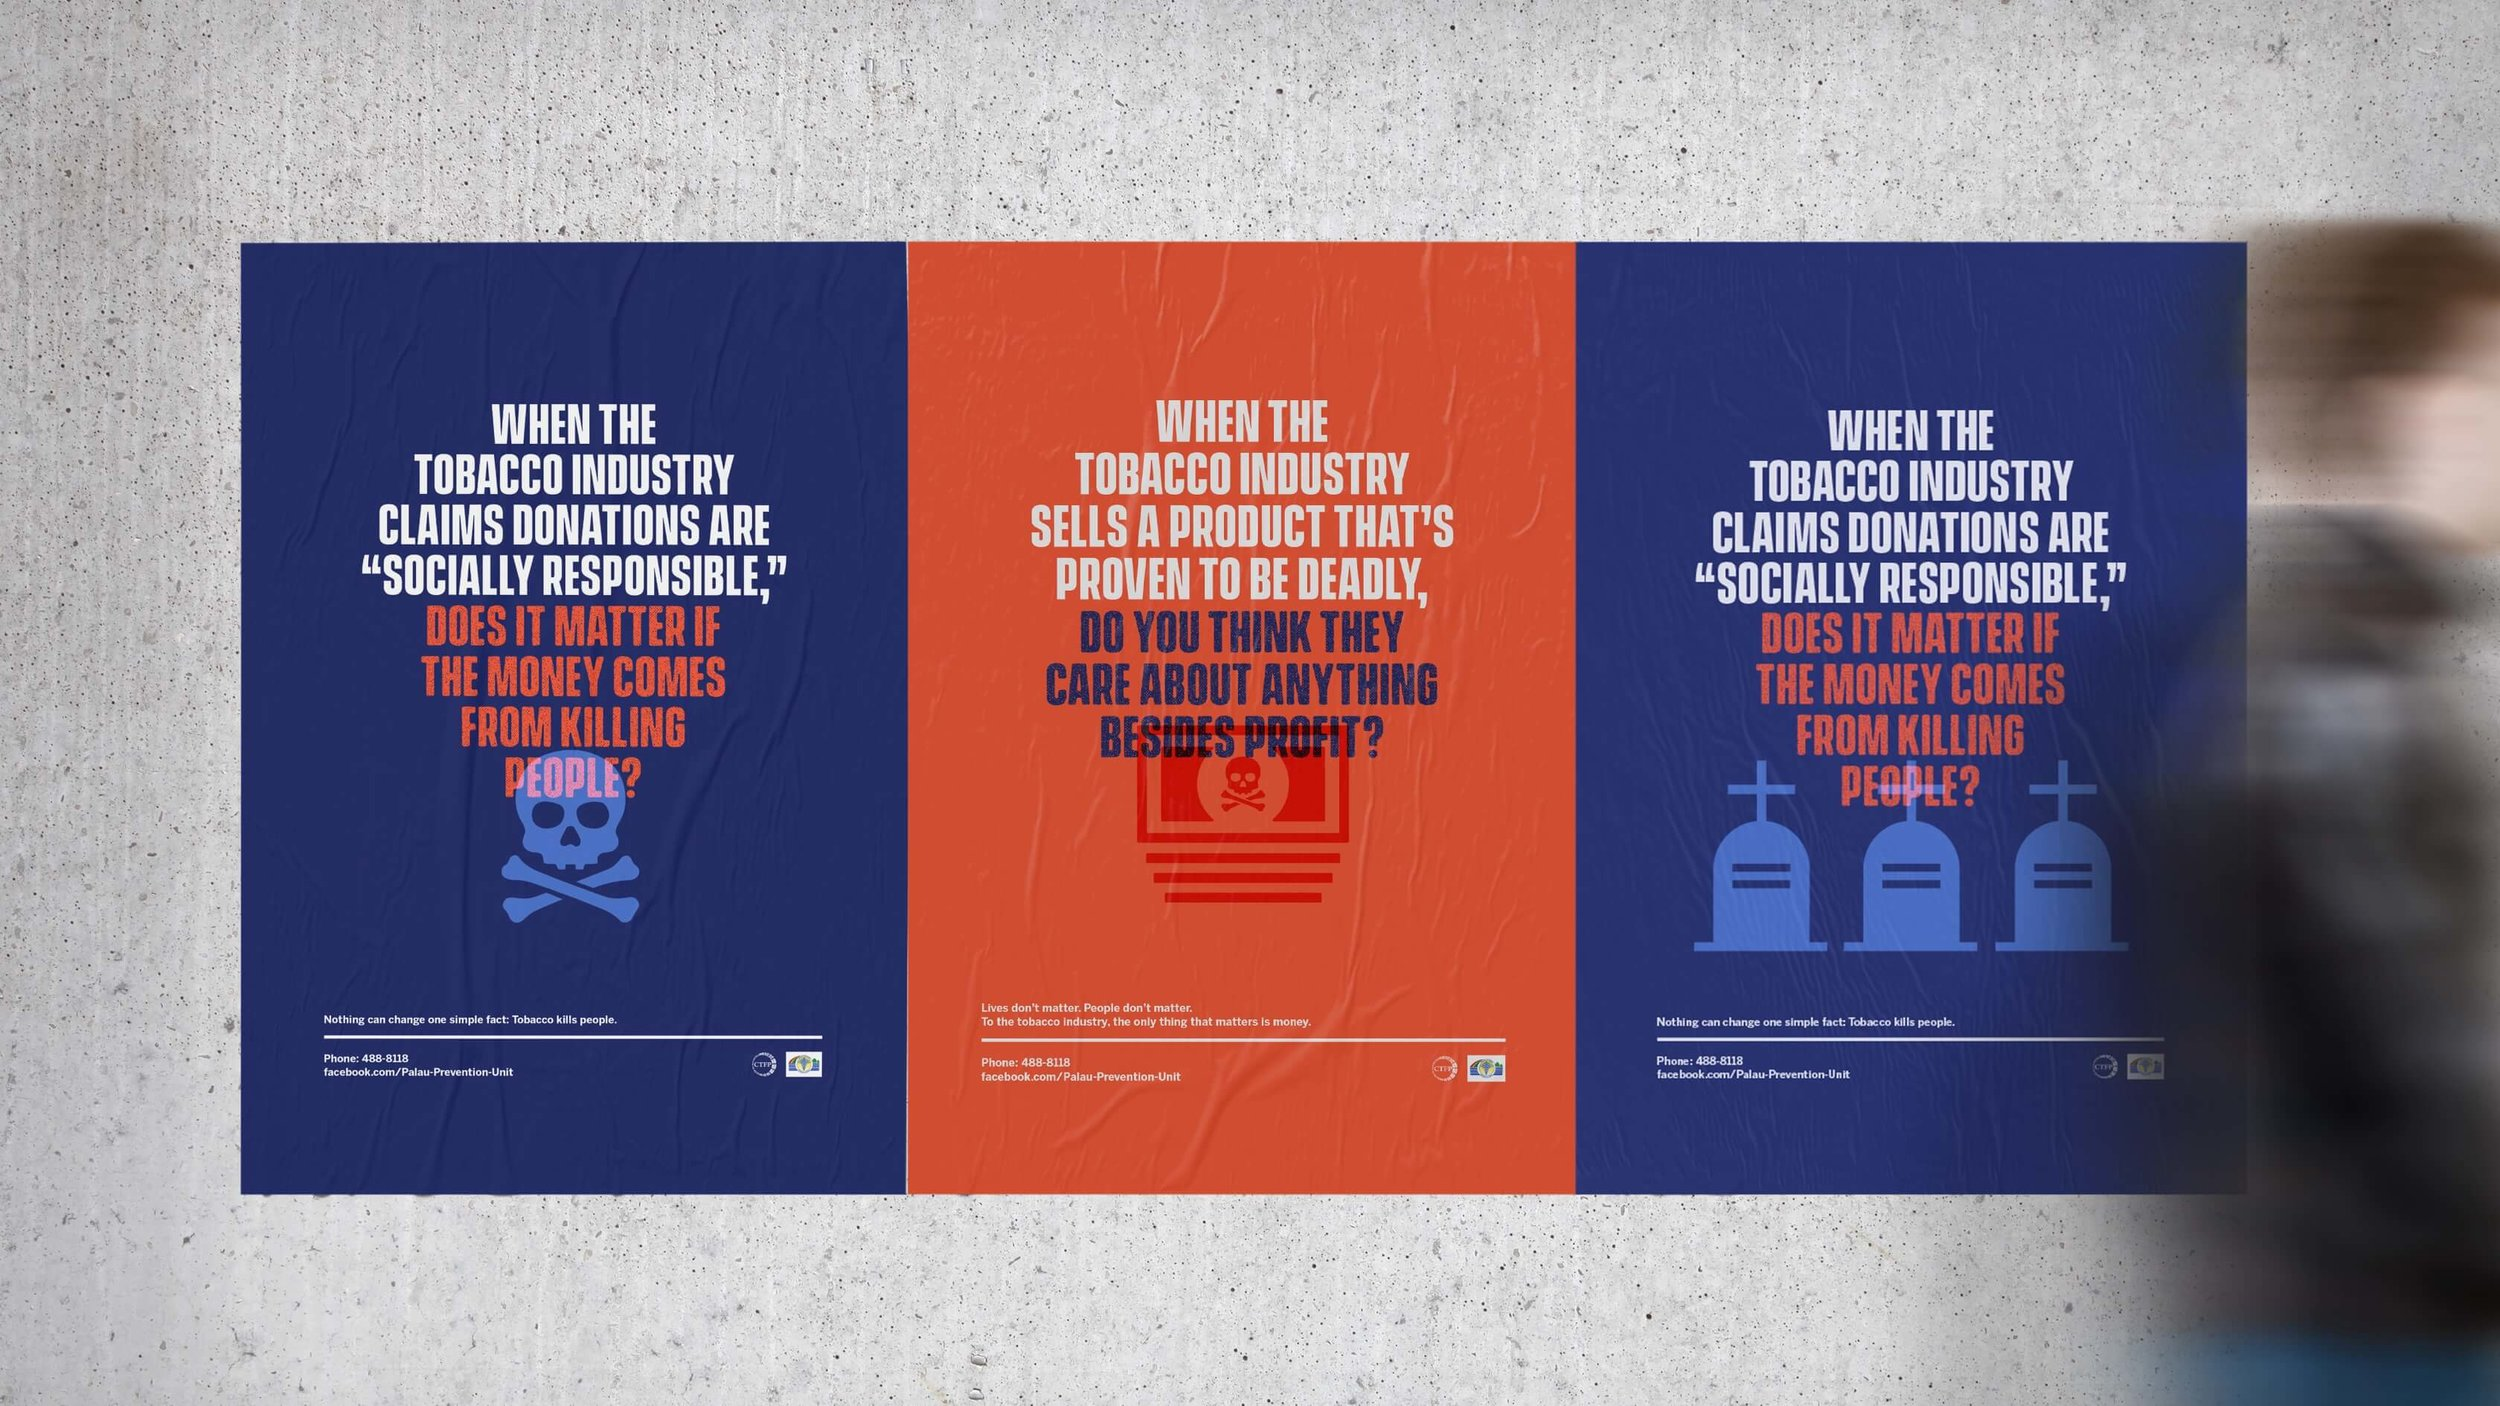 Palau Ministry of Health tobacco industry interference campaign posters